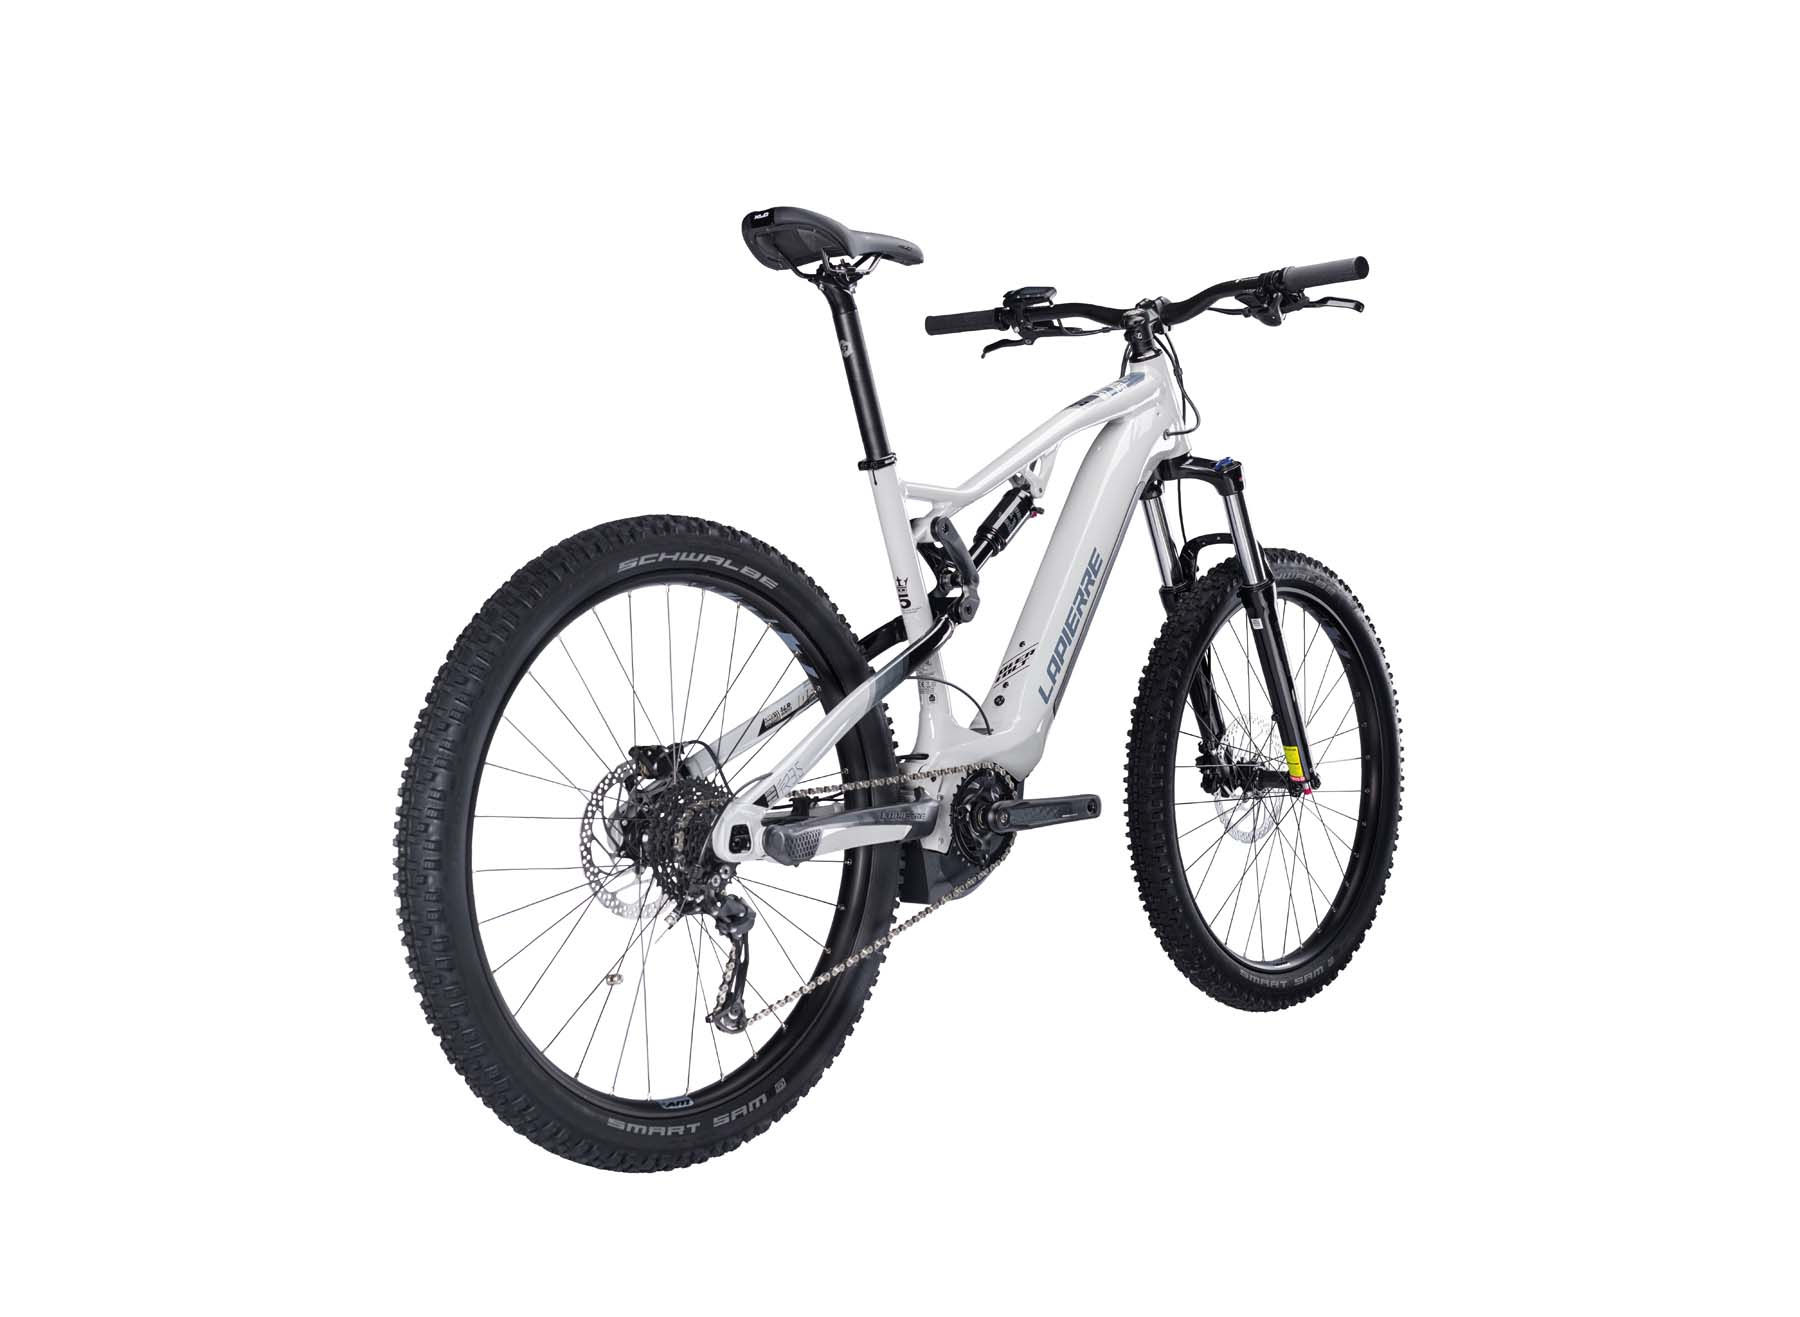 Lapierre Overvolt TR 3.5 2021 Mountain Bike Elettrica da Trail 3